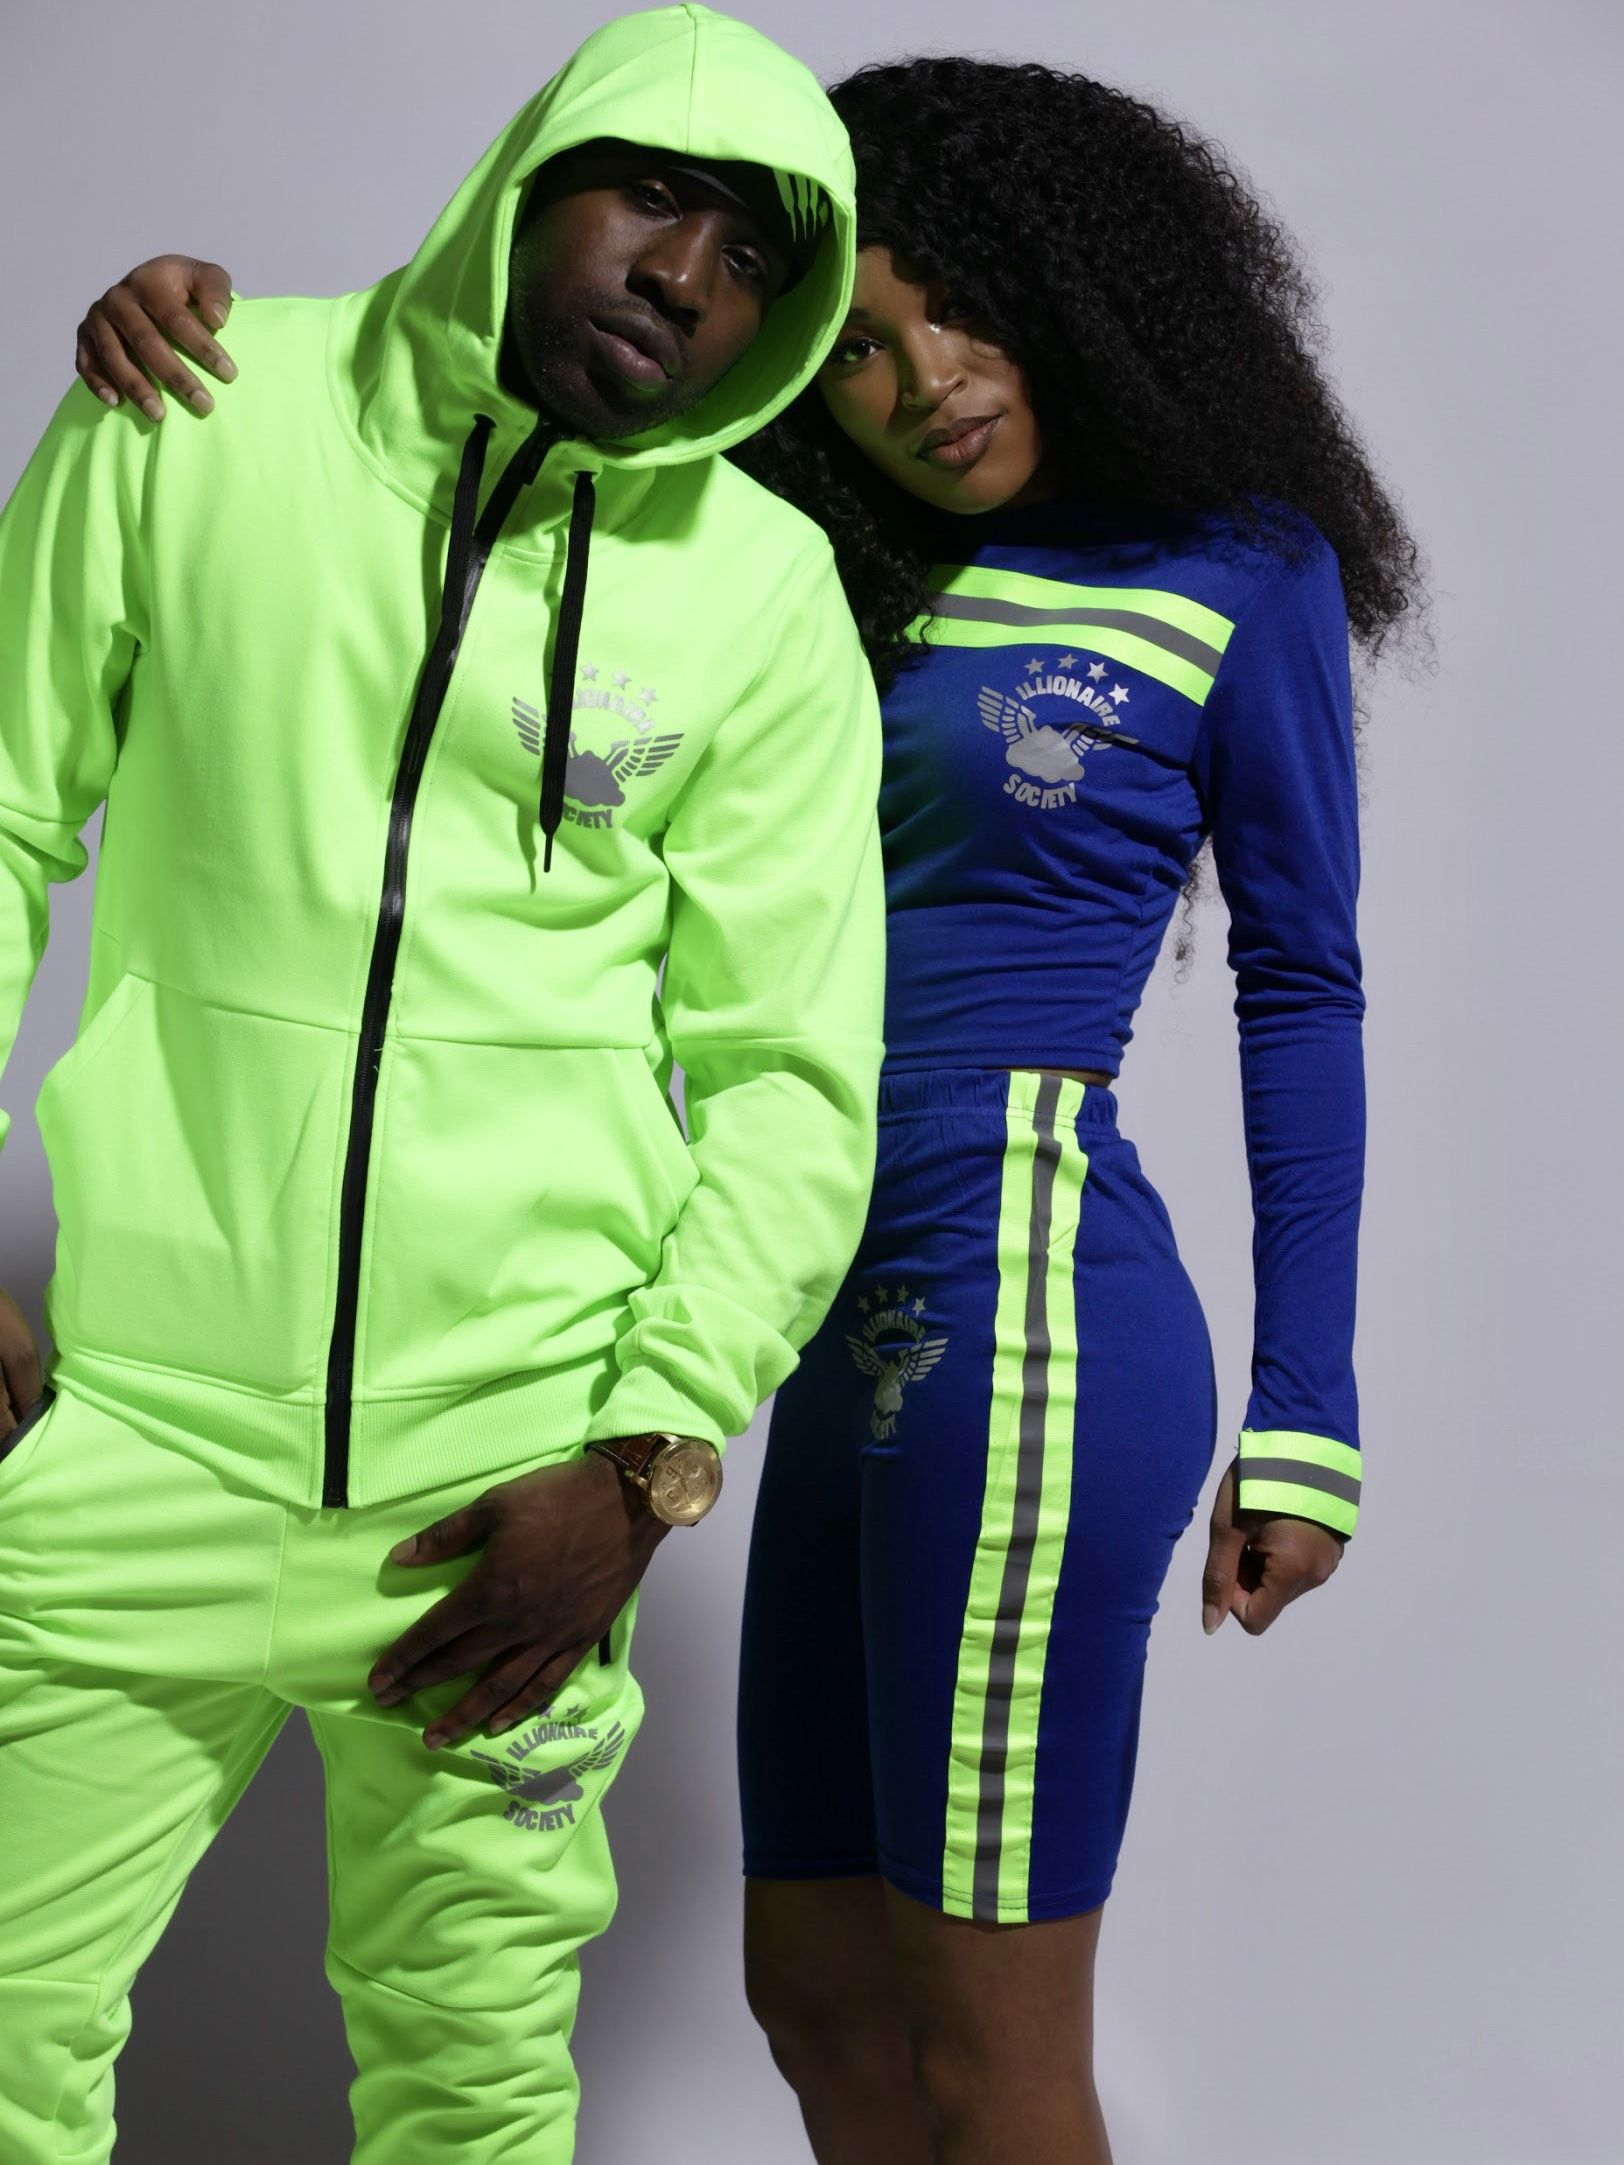 Men's Neon Green Reflective Techsuit and Women's